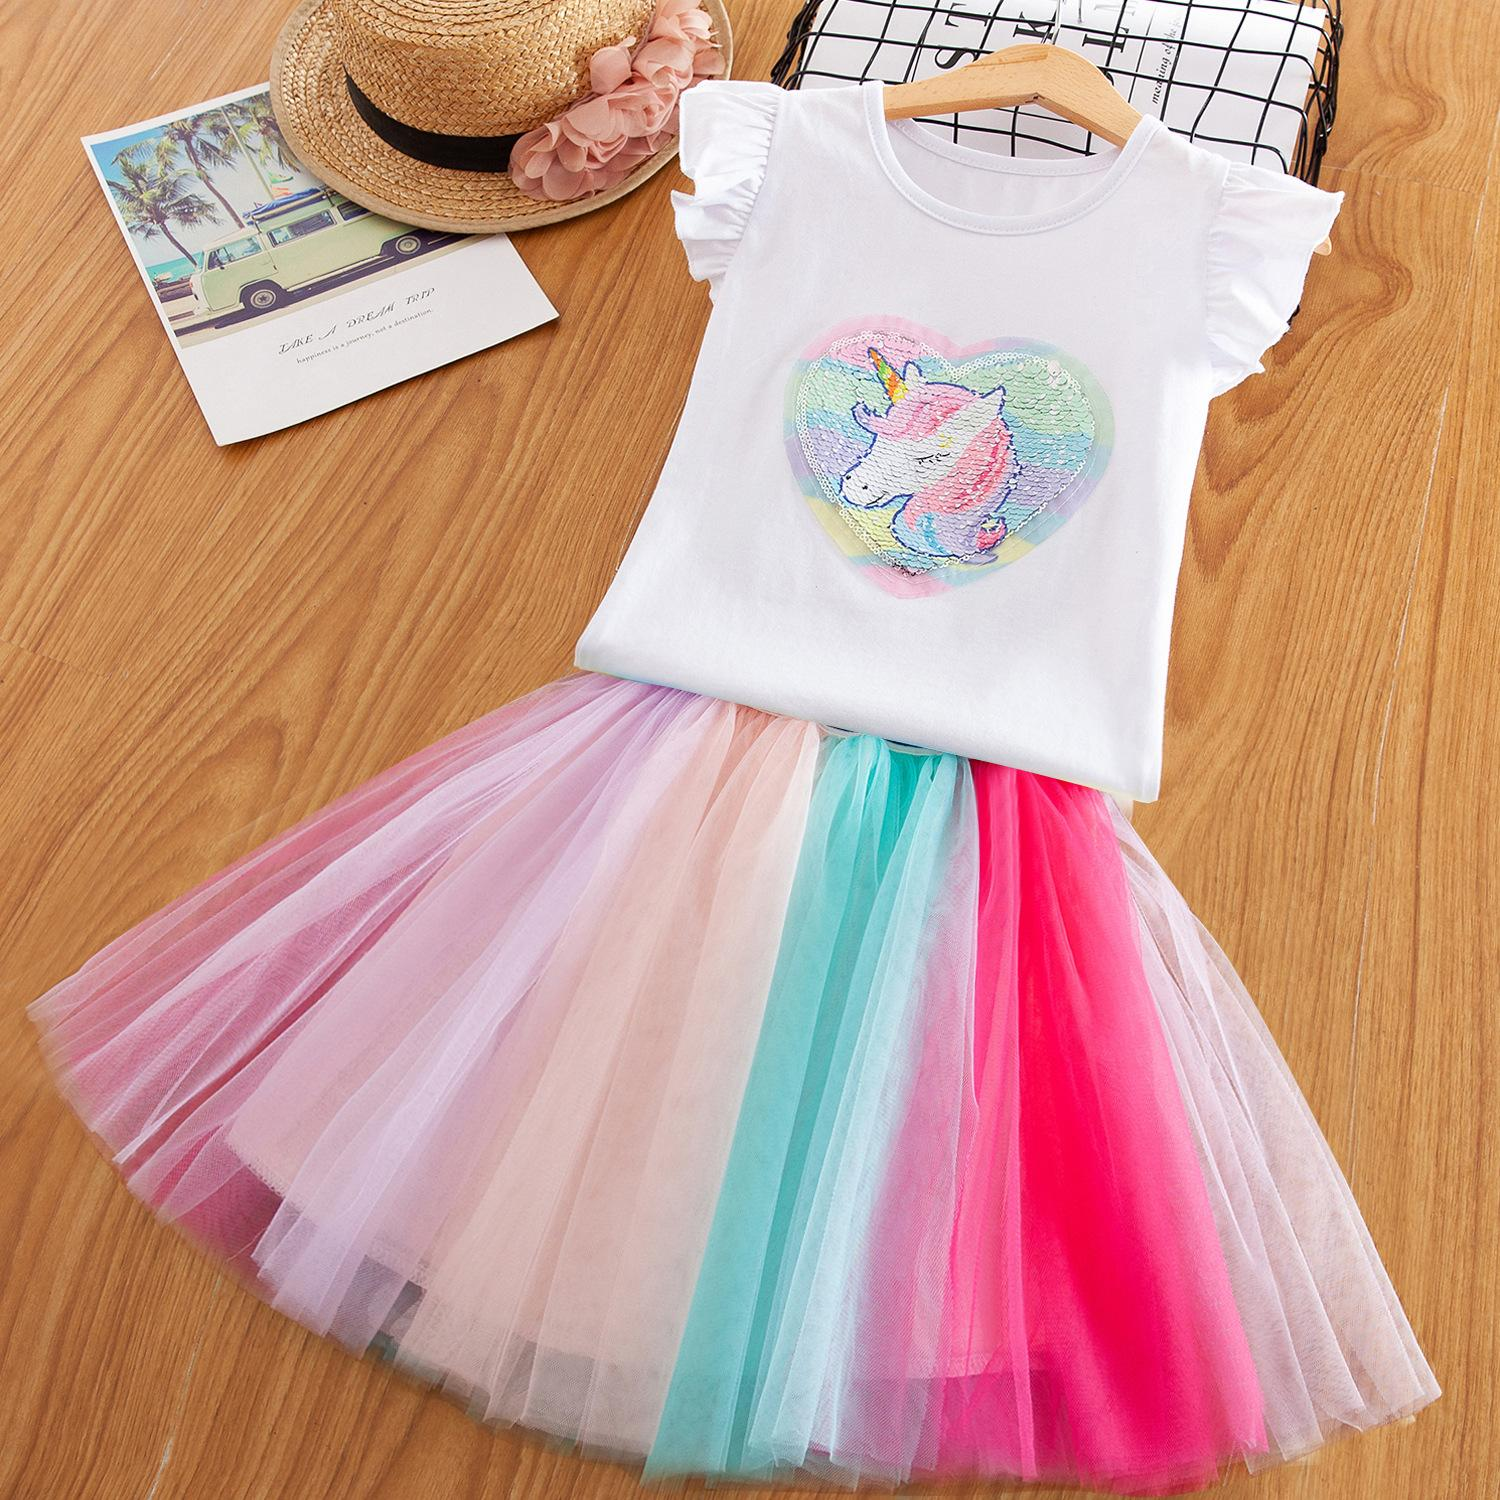 85ab905957e 2019 Baby Girls Unicorn Outfits Dress Children T Shirts+TuTu Rainbow Skirts  2019 Summer Fashion Boutique Kids Dress Clothing 7 Styles B1 From  Start baby